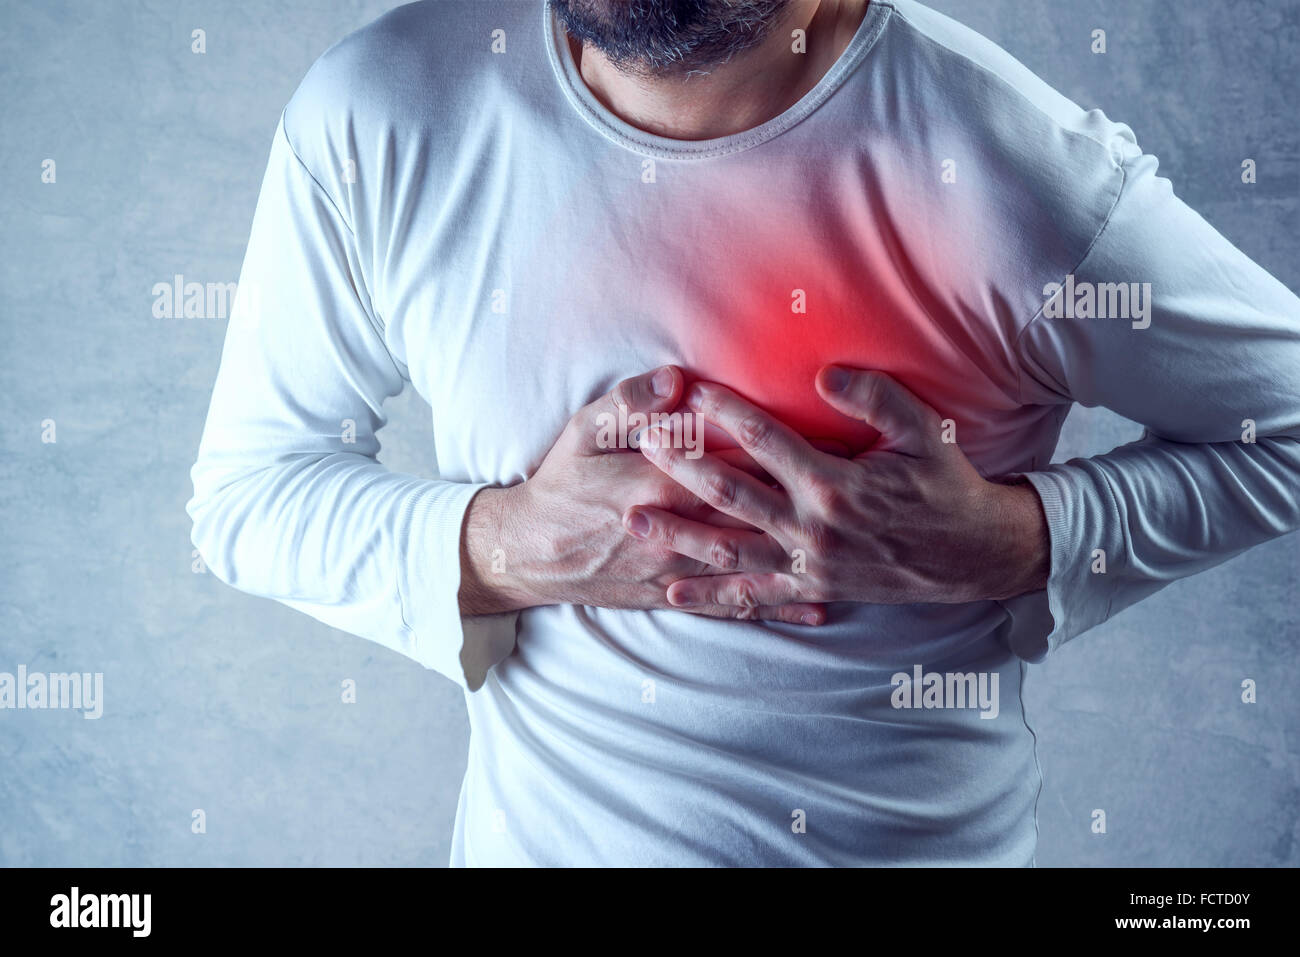 Severe heartache, man suffering from chest pain, having heart attack or painful cramps, pressing on chest - Stock Image